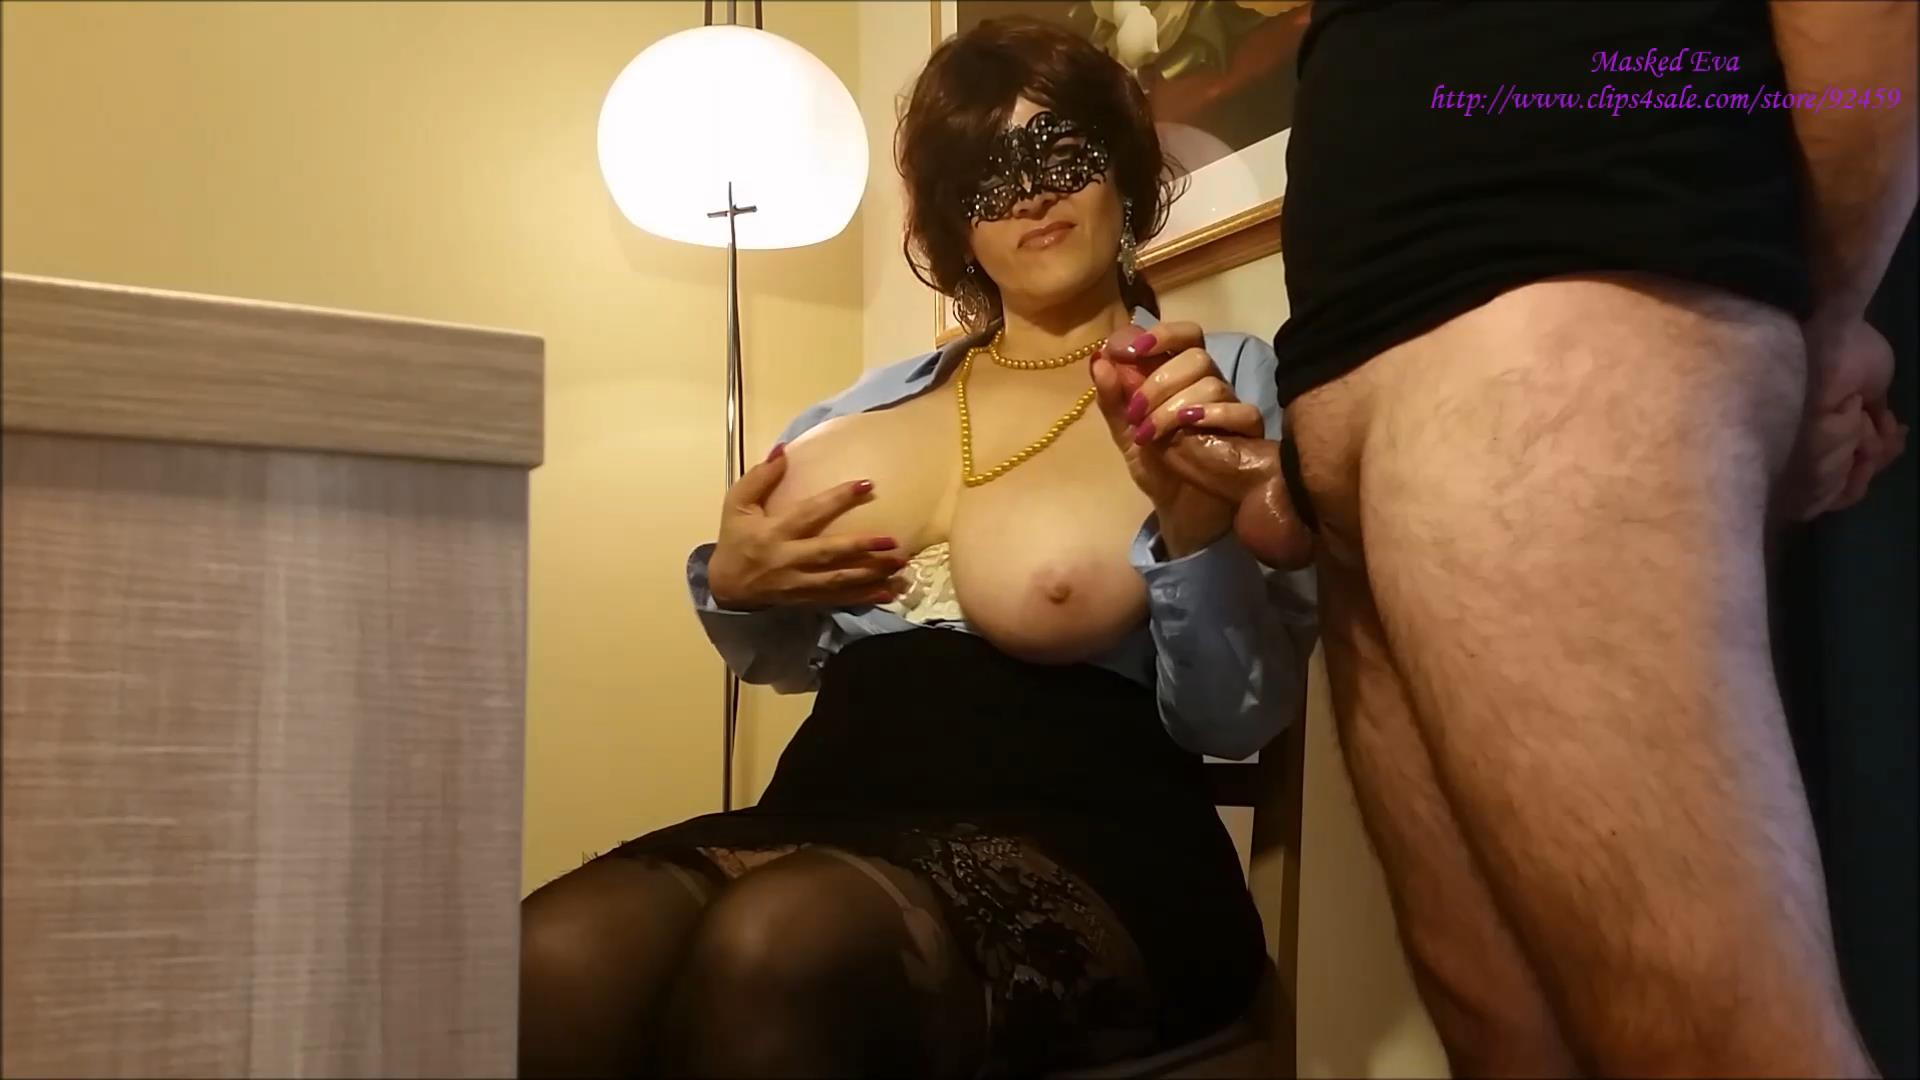 Boss Eva Gives You A Handjob – Masked Eva